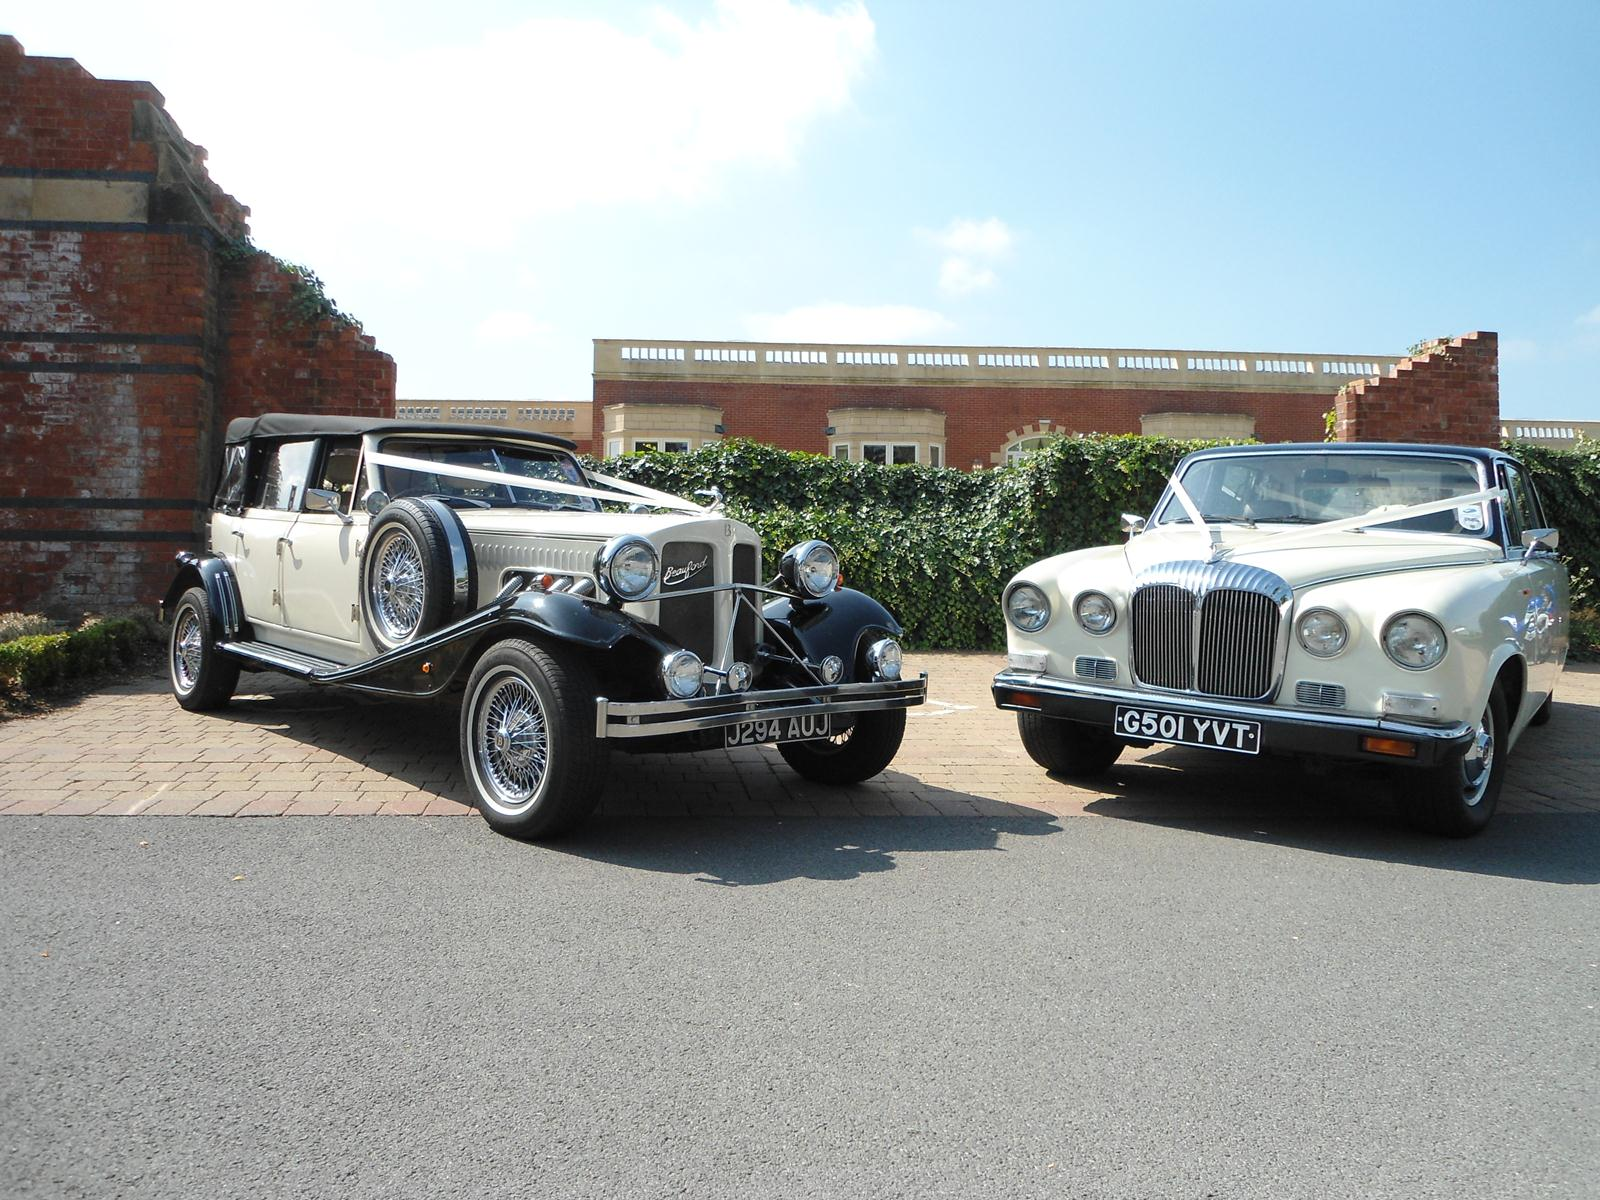 Beauford 1 and Damiler Rockliffe